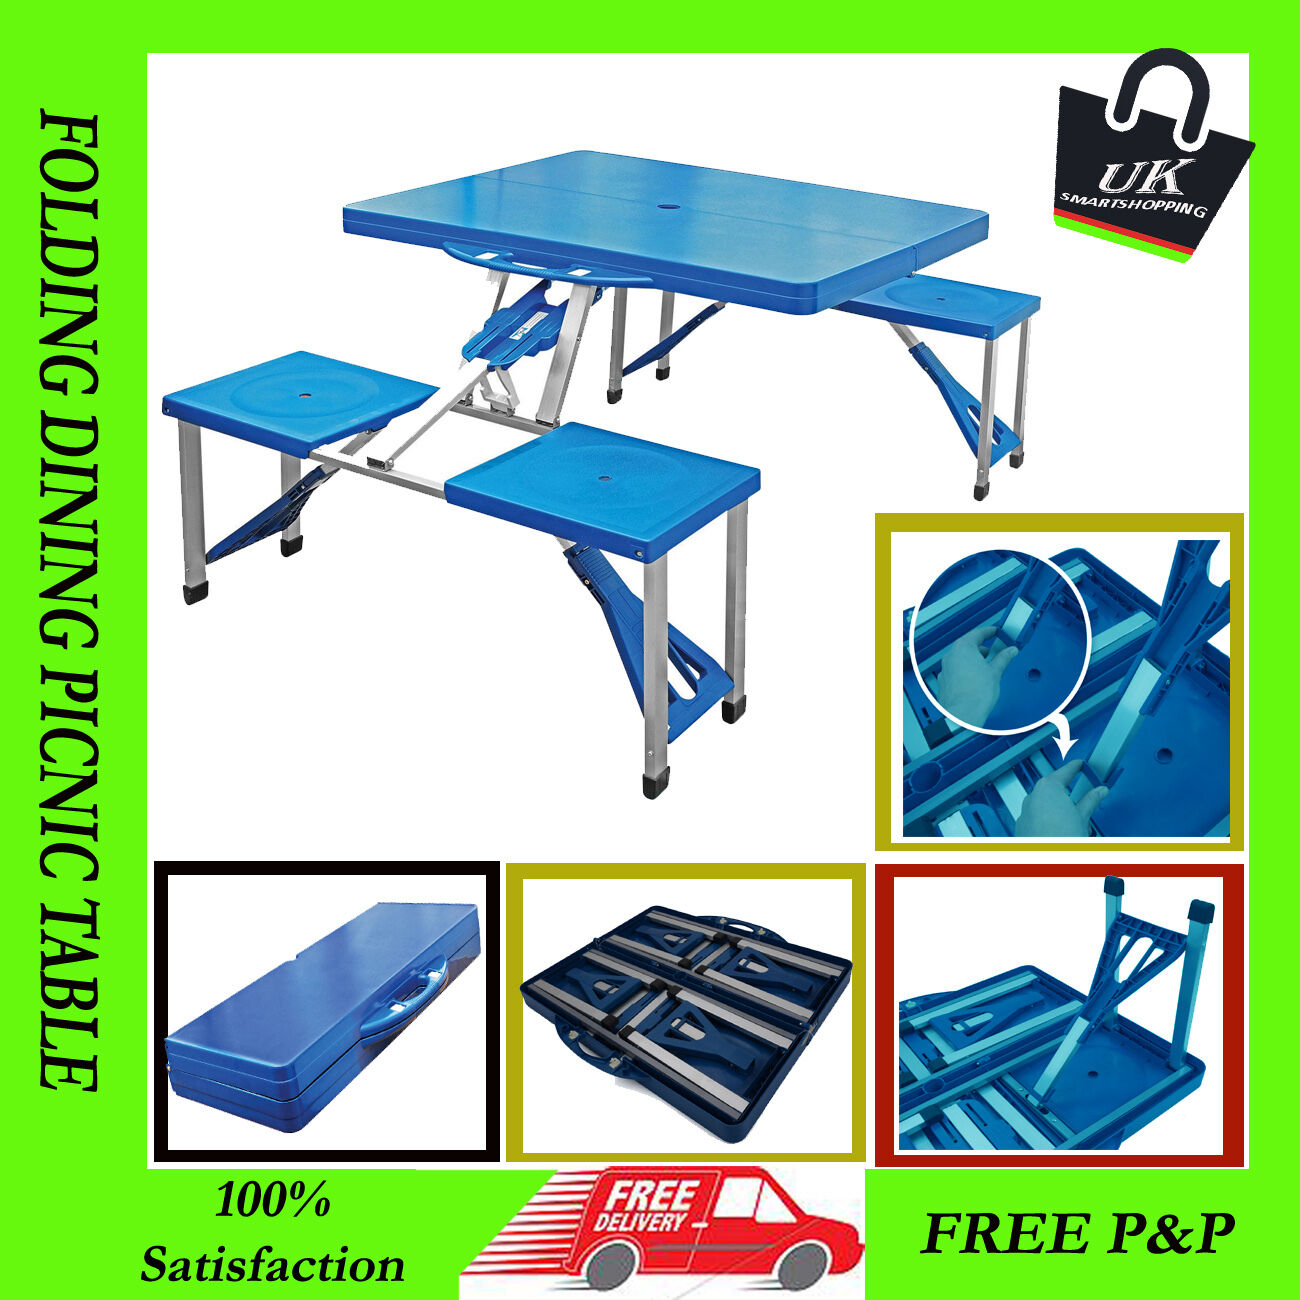 NEW Portable Folding Camping Picnic Outdoor BBQ Dining Picnic Table Chairs Set